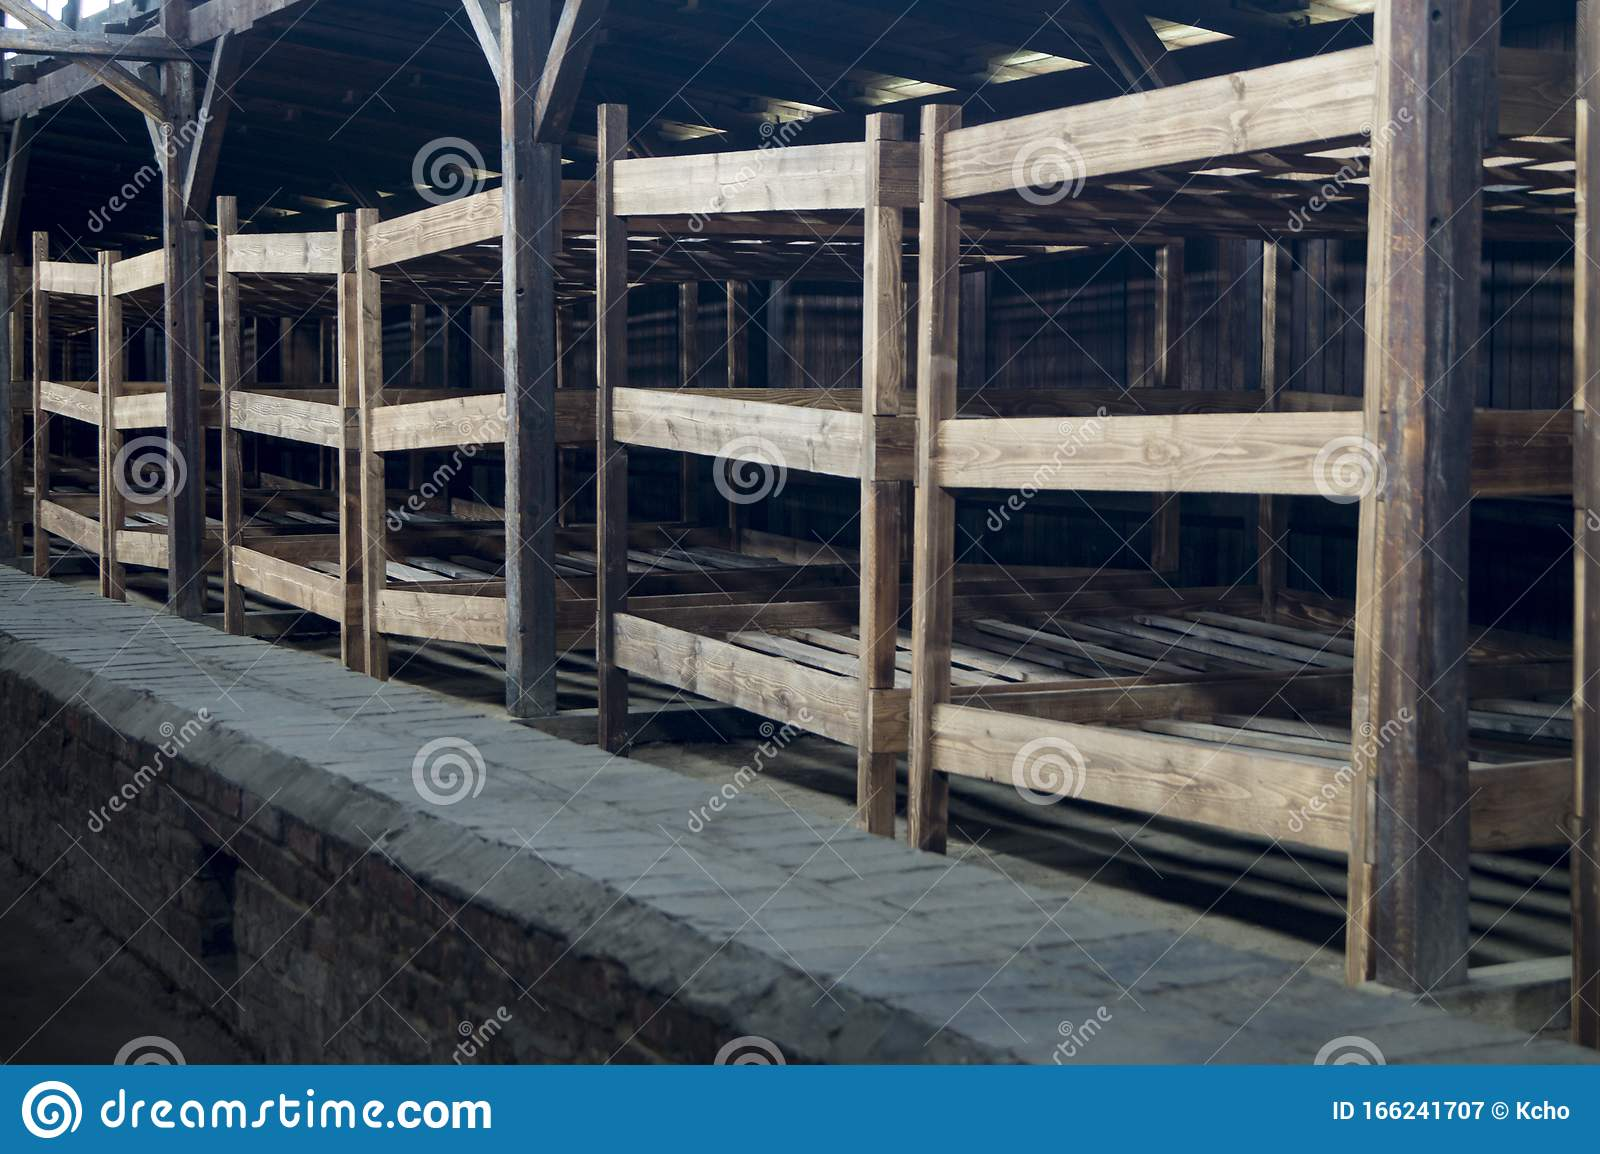 Picture of: Barracks Birkenau Editorial Photography Image Of Area 166241707